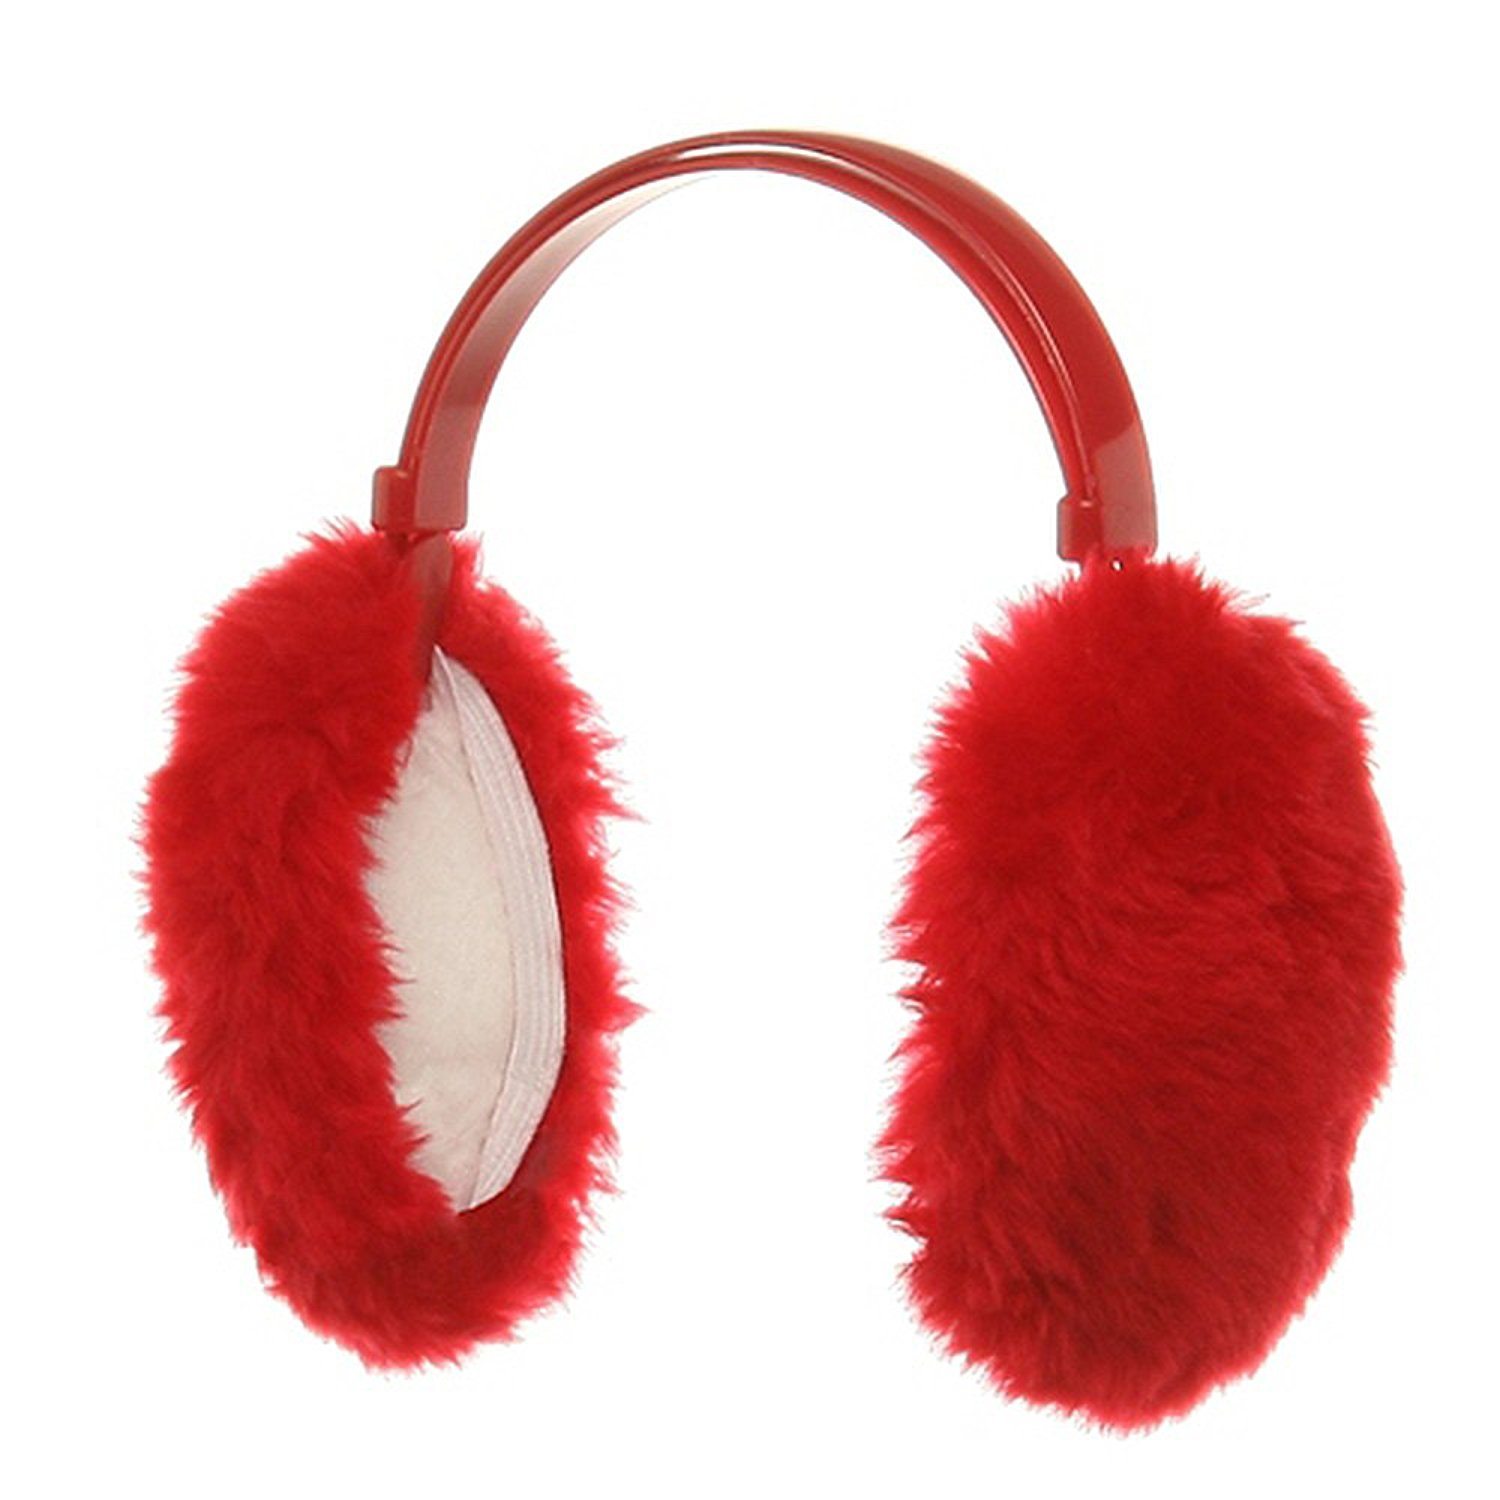 Ear Muffs - Red at Amazon Men's Clothing store: Cold Weather Earmuffs